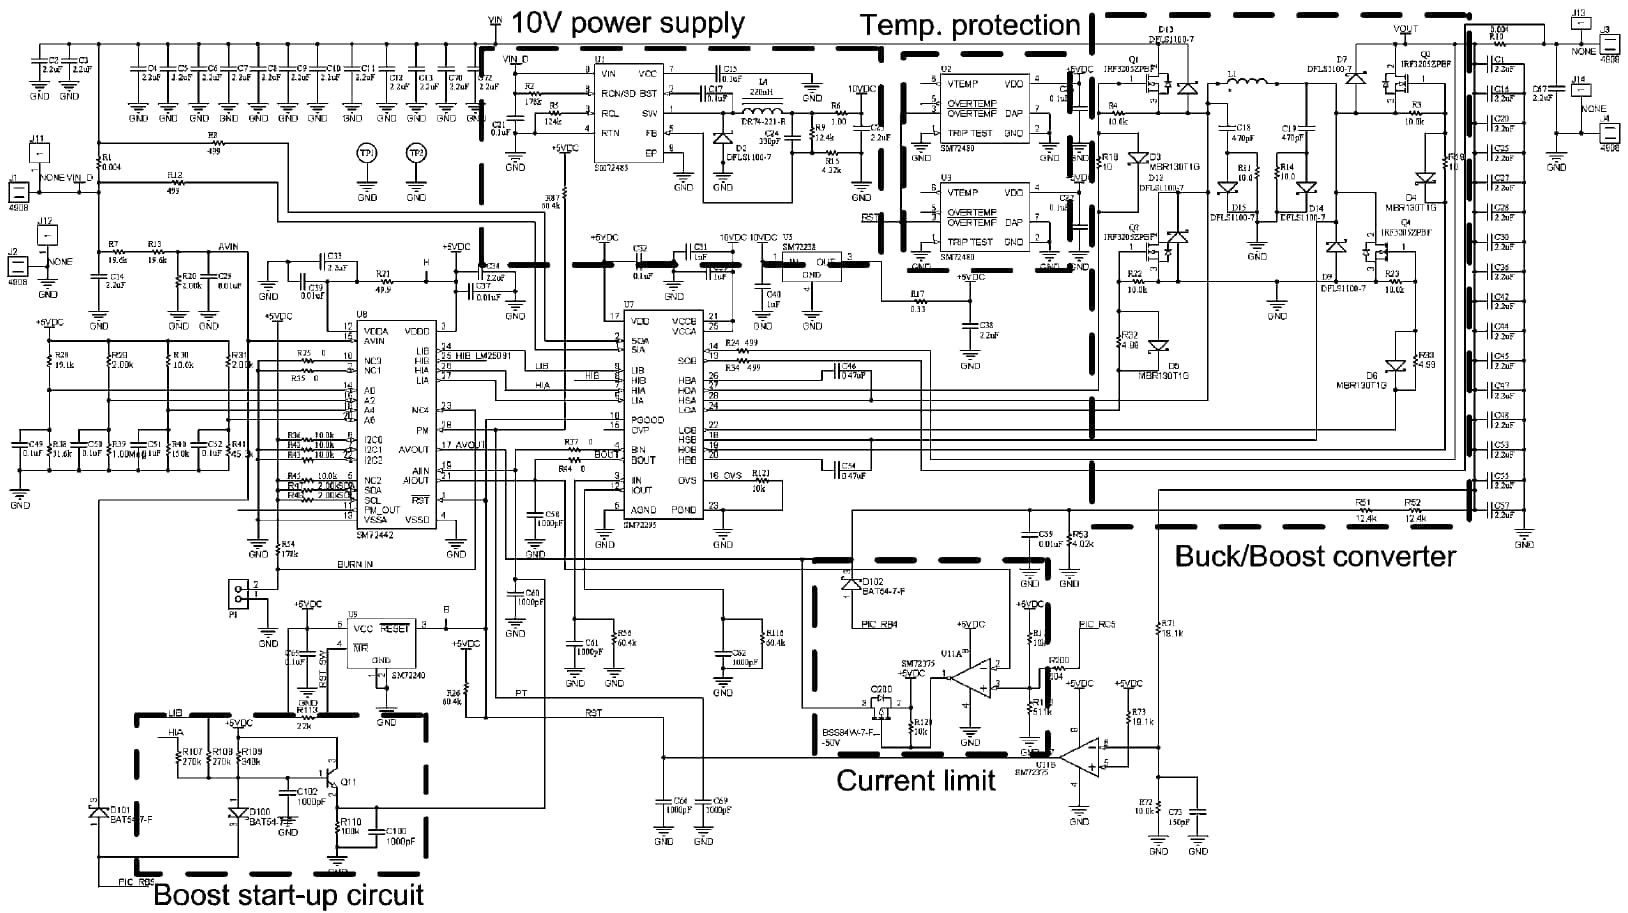 solar charge controller application schematic diagram